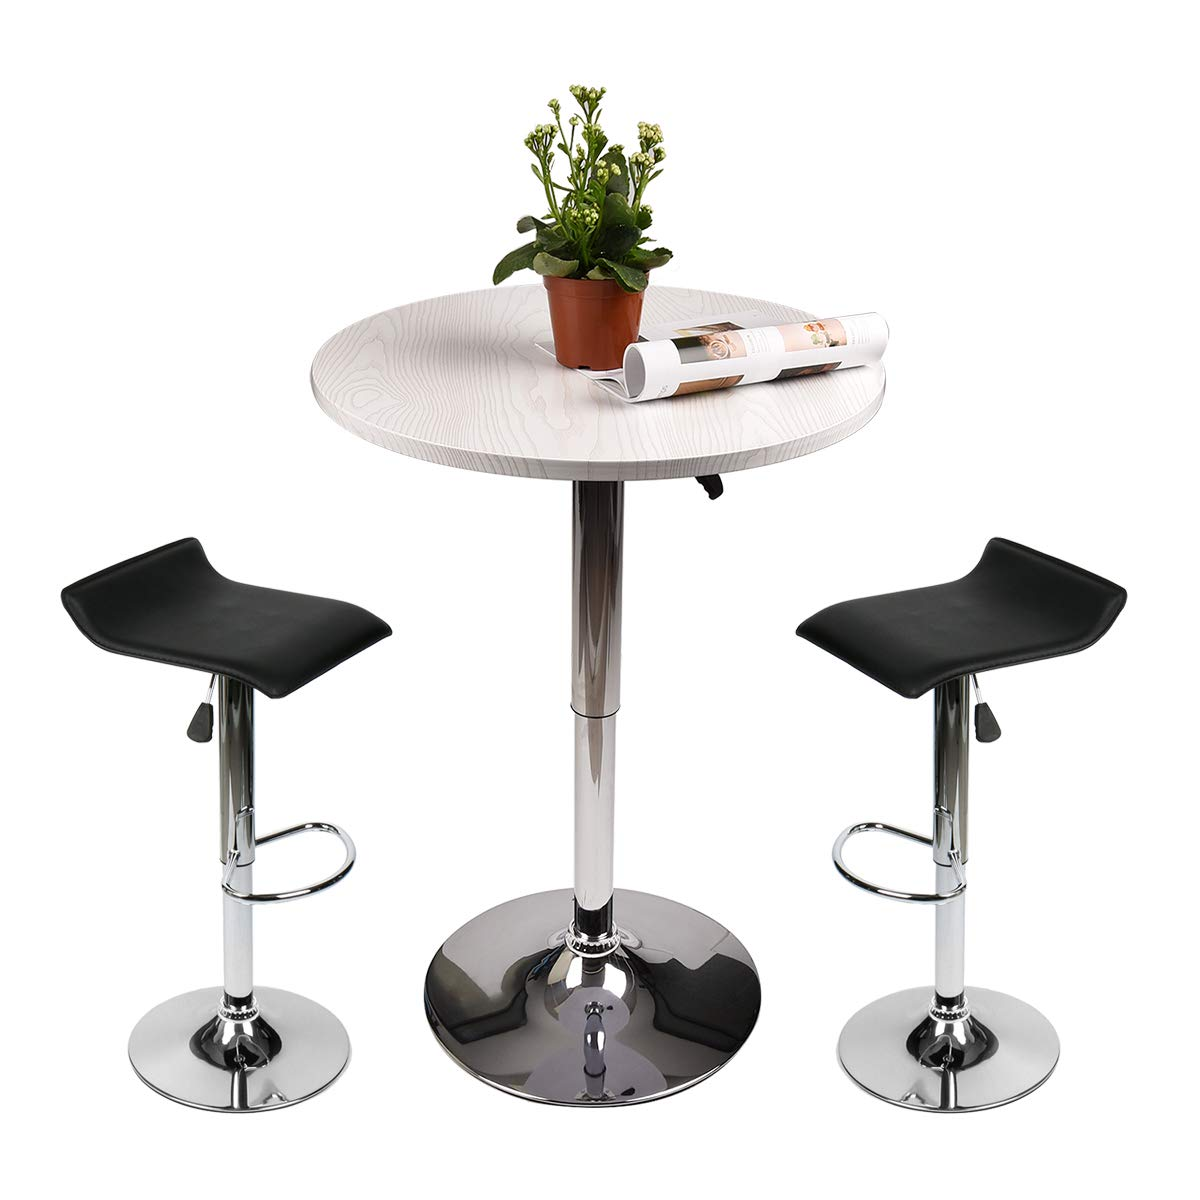 Adjustable Height Bar Table Set Round Bar Table and Chairs with Chrome Metal and Wood Cocktail Pub Table MDFTop 360°Swivel Furniture for Home Kitchen and Bistro